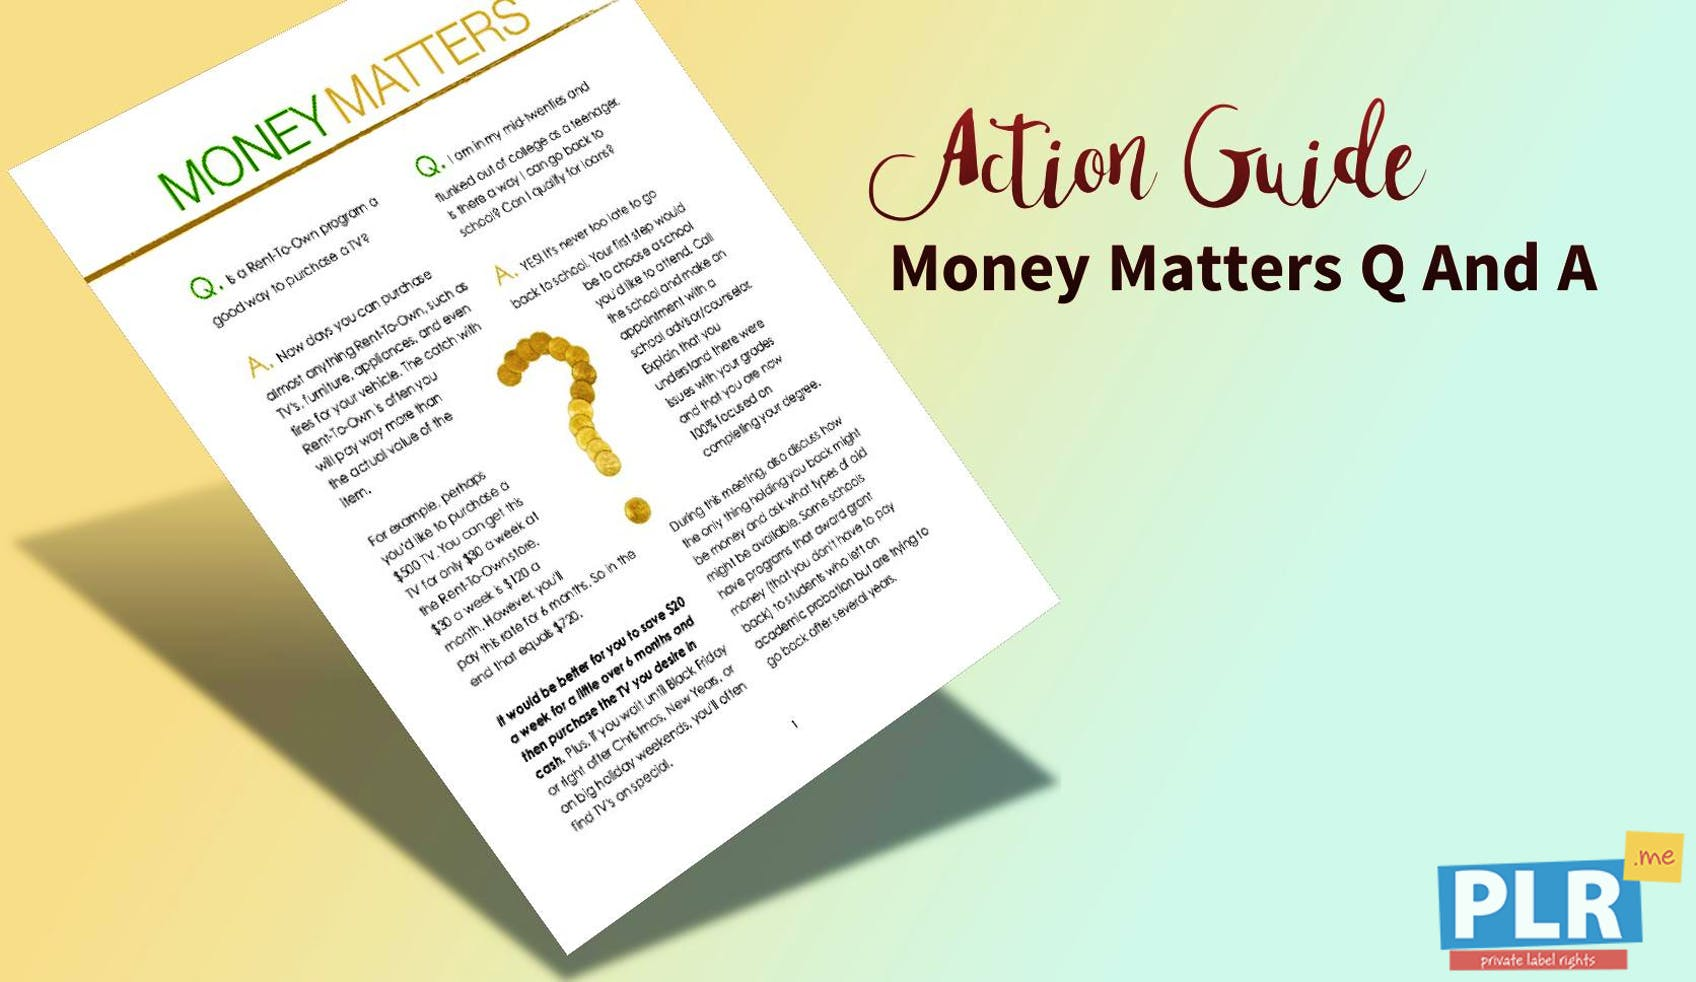 Money Matters Q And A